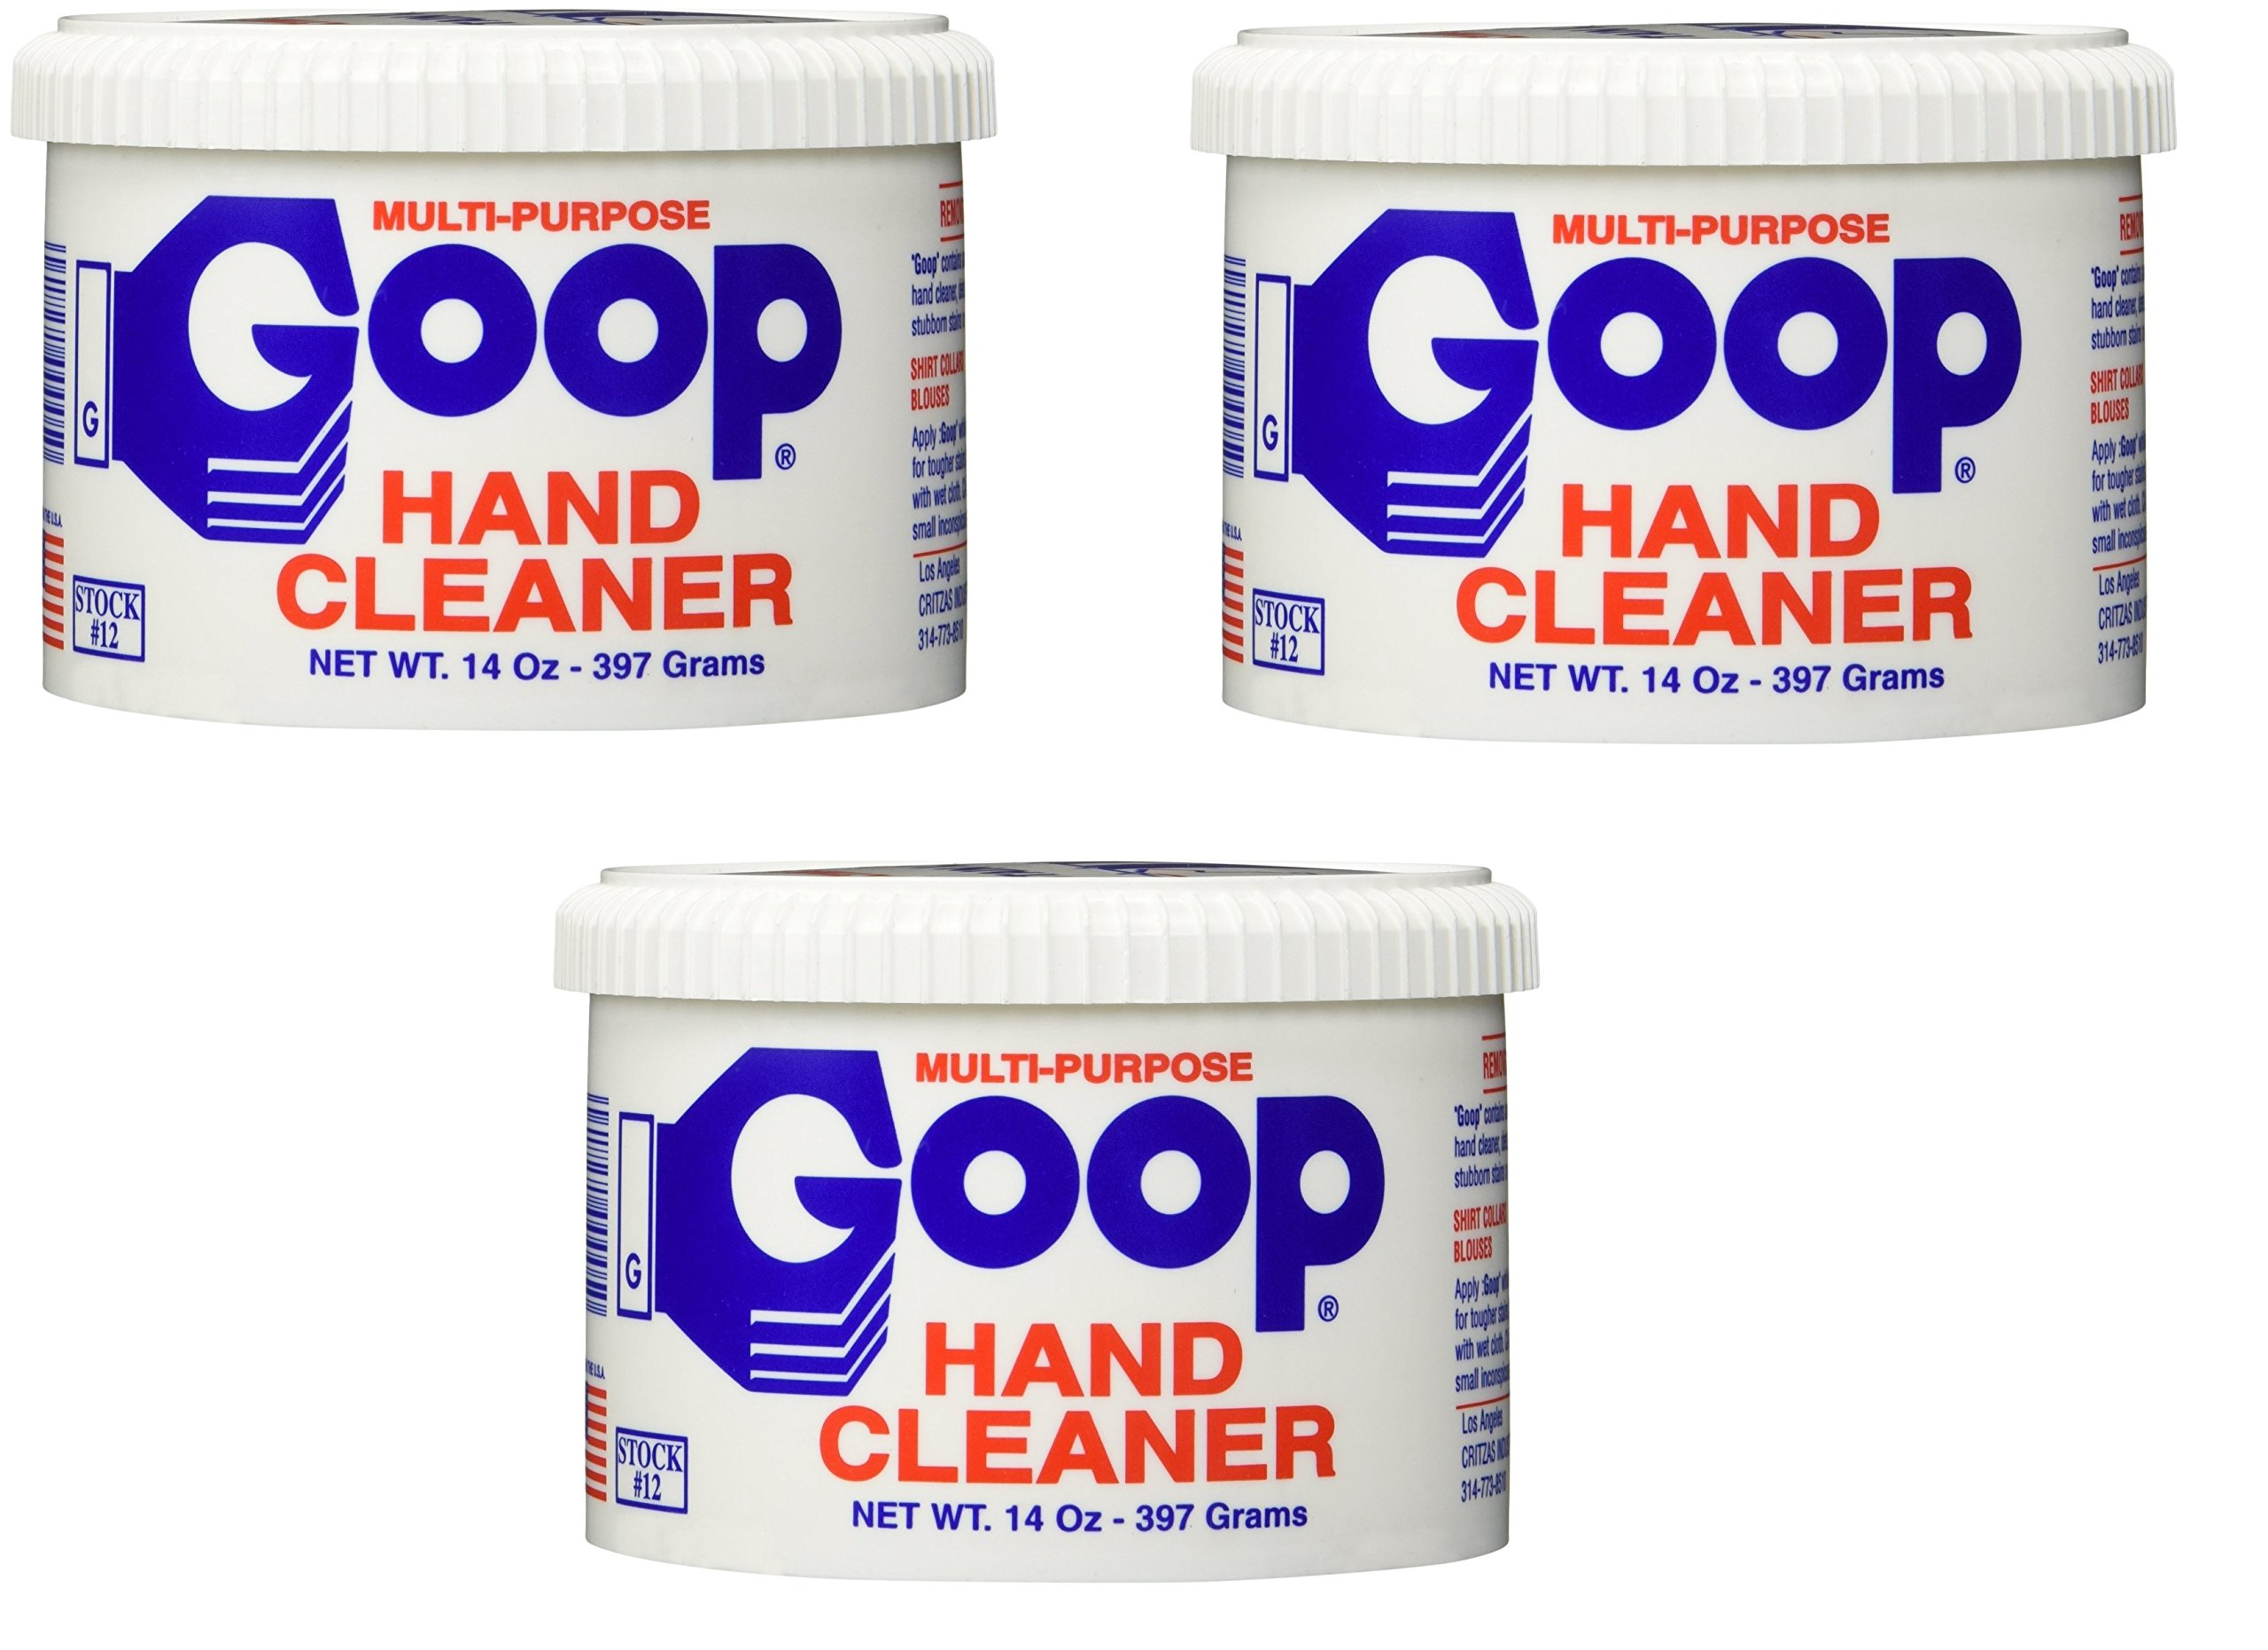 Goop Hand Cleaner, Laundry Stain Remover, (Pack of 3) product image